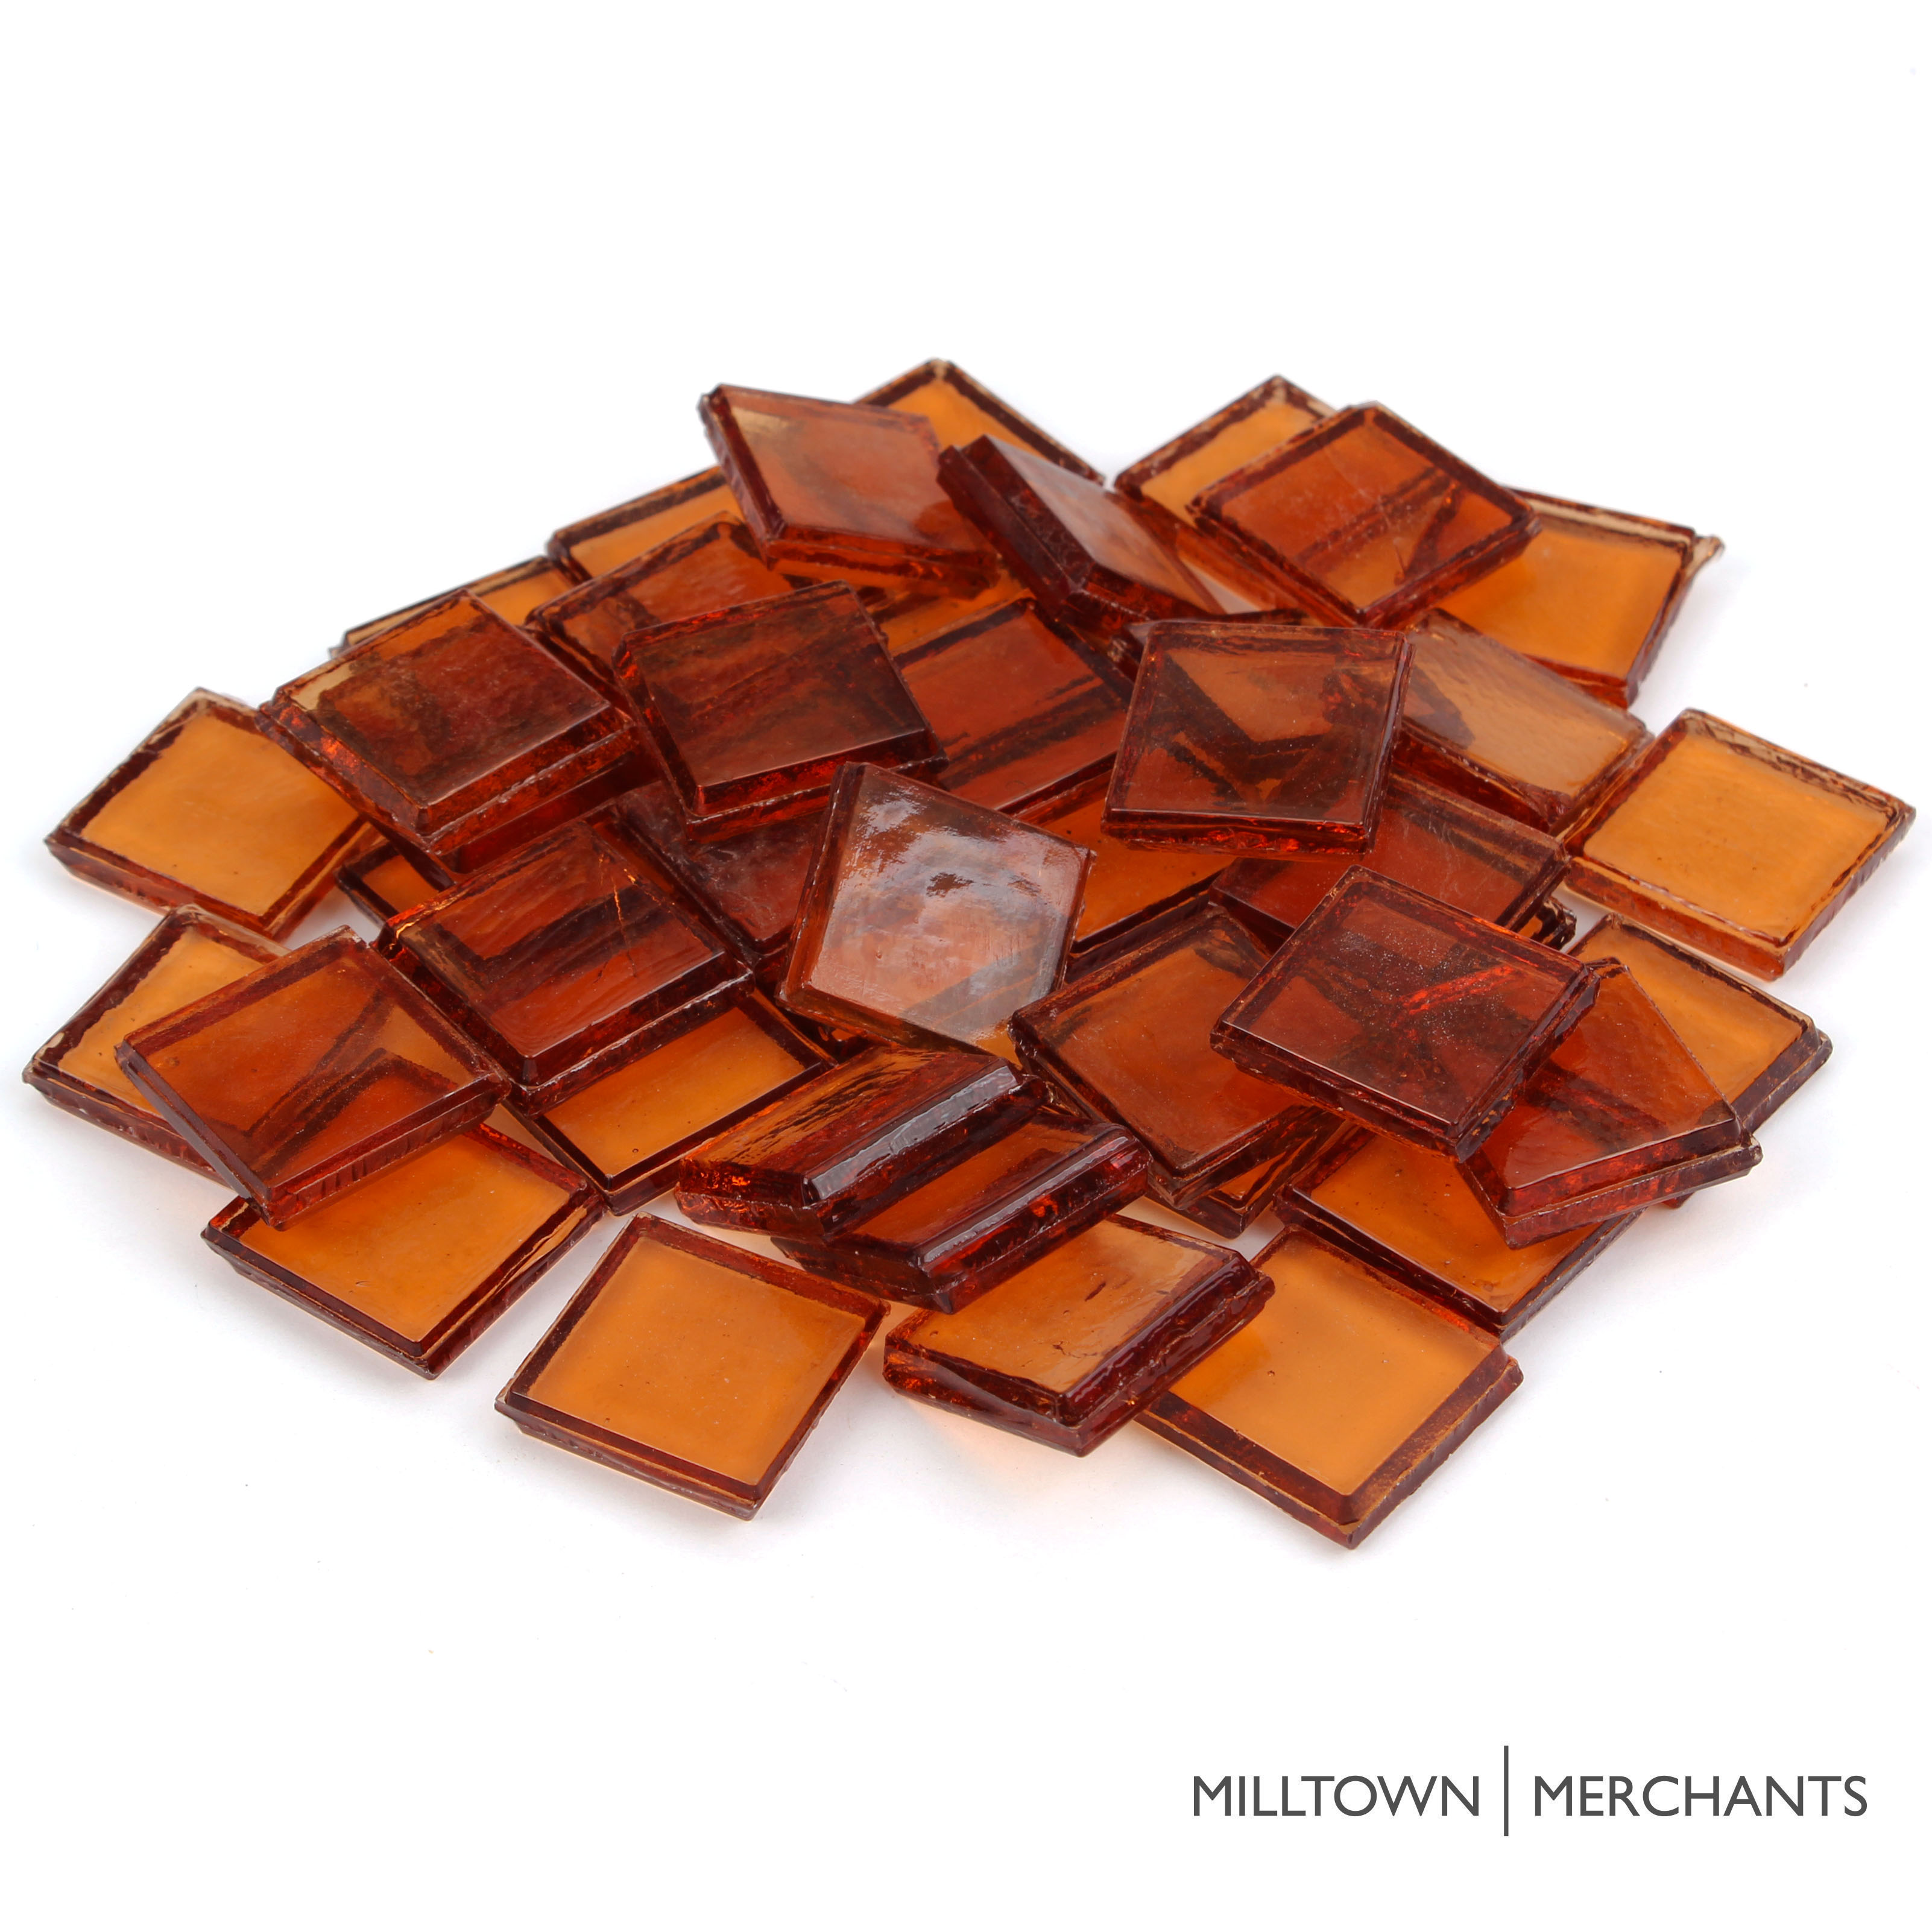 "Milltown Merchants 7/8"" (22mm) Premium Glass Mosaic Tiles - Transparent Glass Squares for Mosaics - Bulk Assortment of Mosaic Tiles"